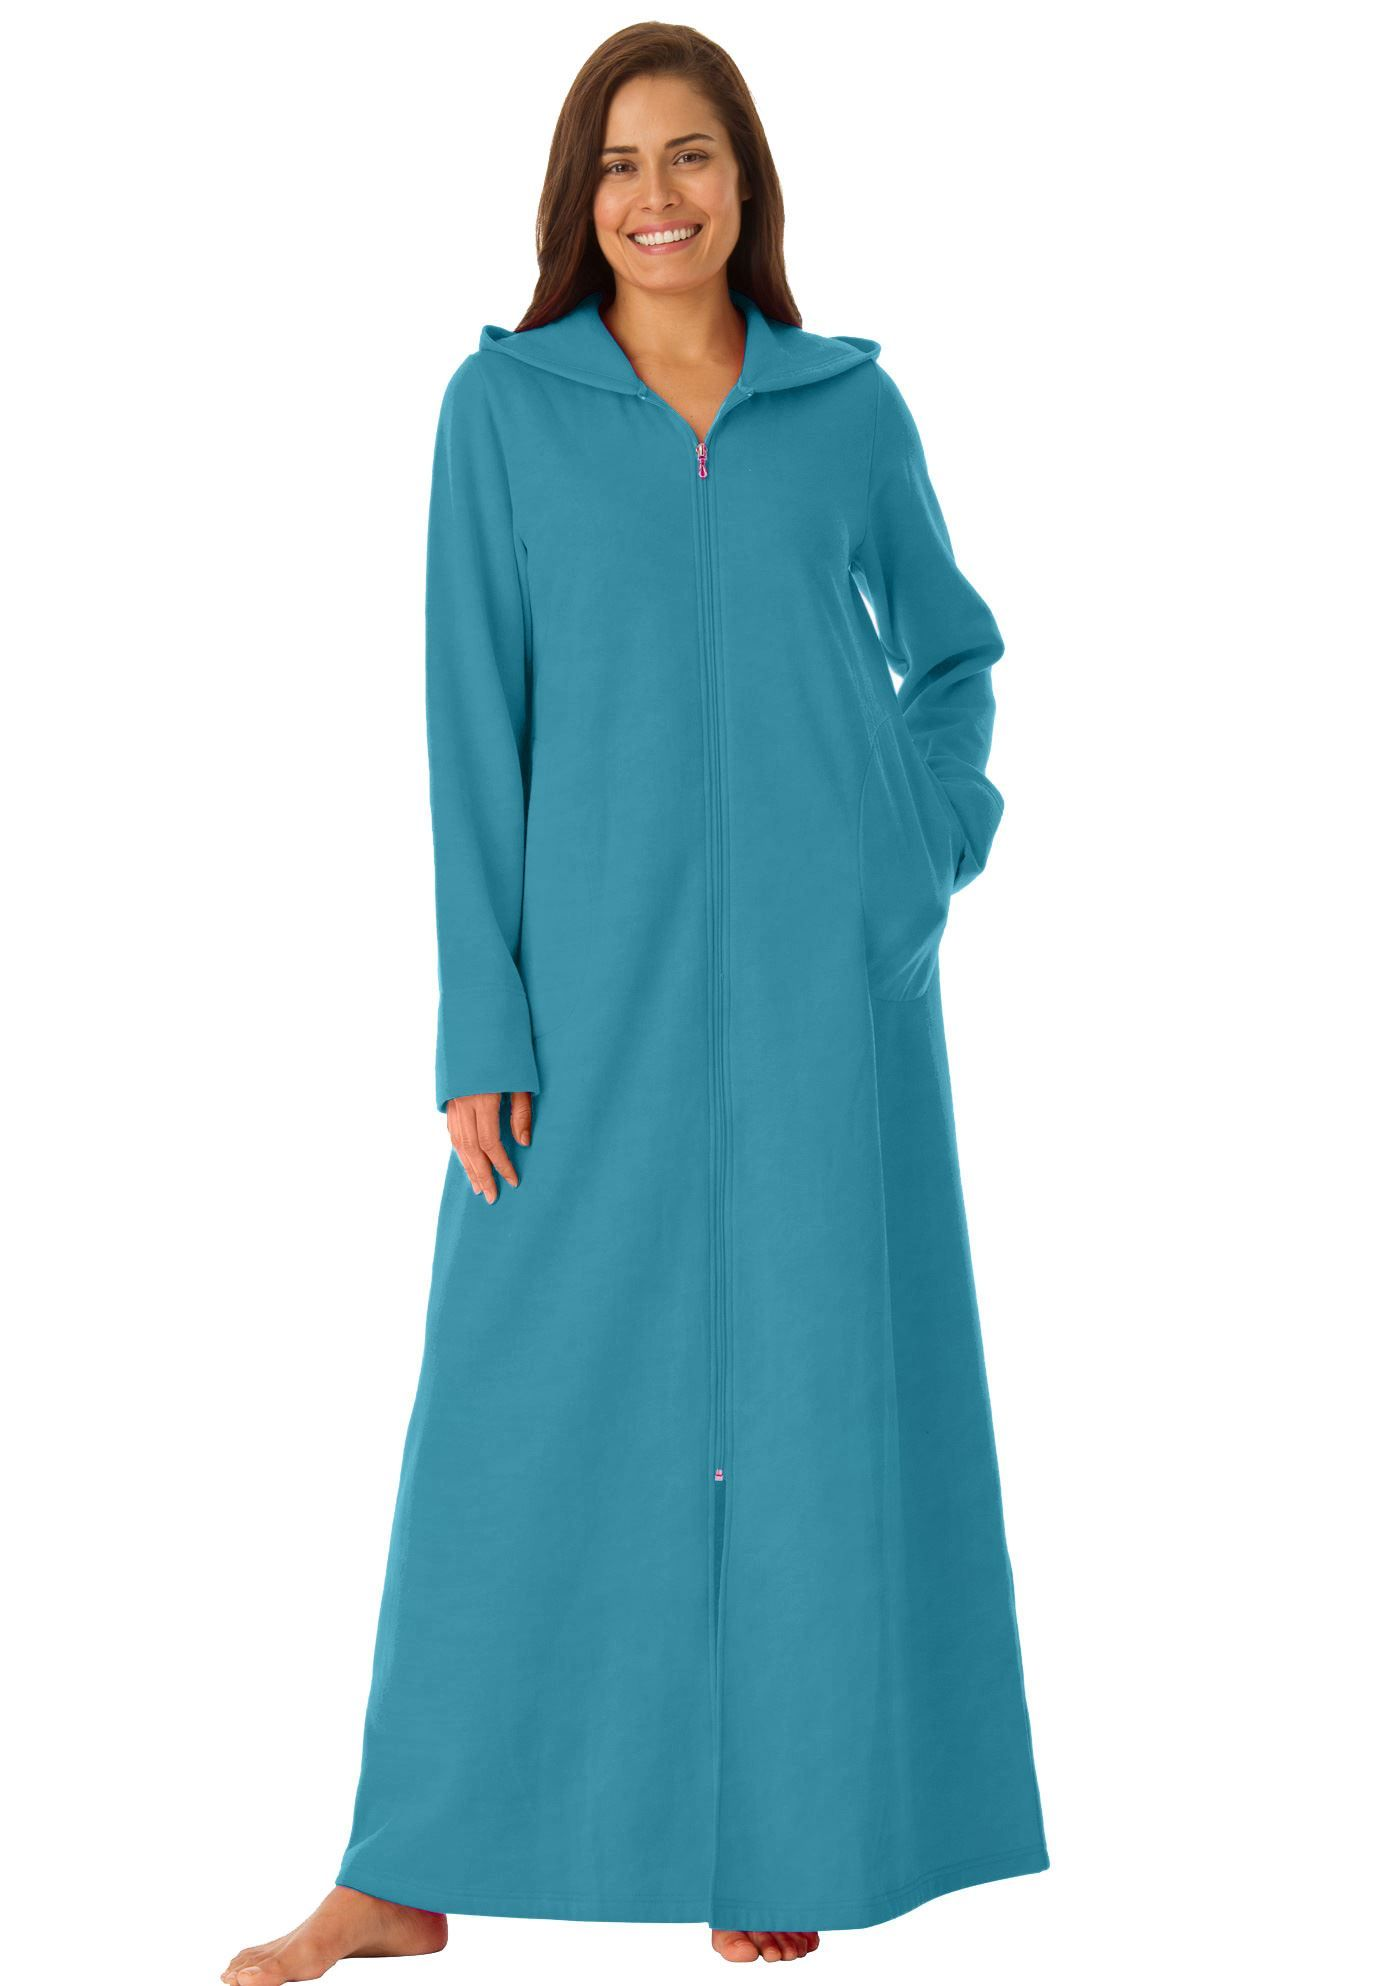 800c85c0cb1 Petite Hooded Fleece Robe by Dreams   Co. reg  - Women s Plus Size Clothing